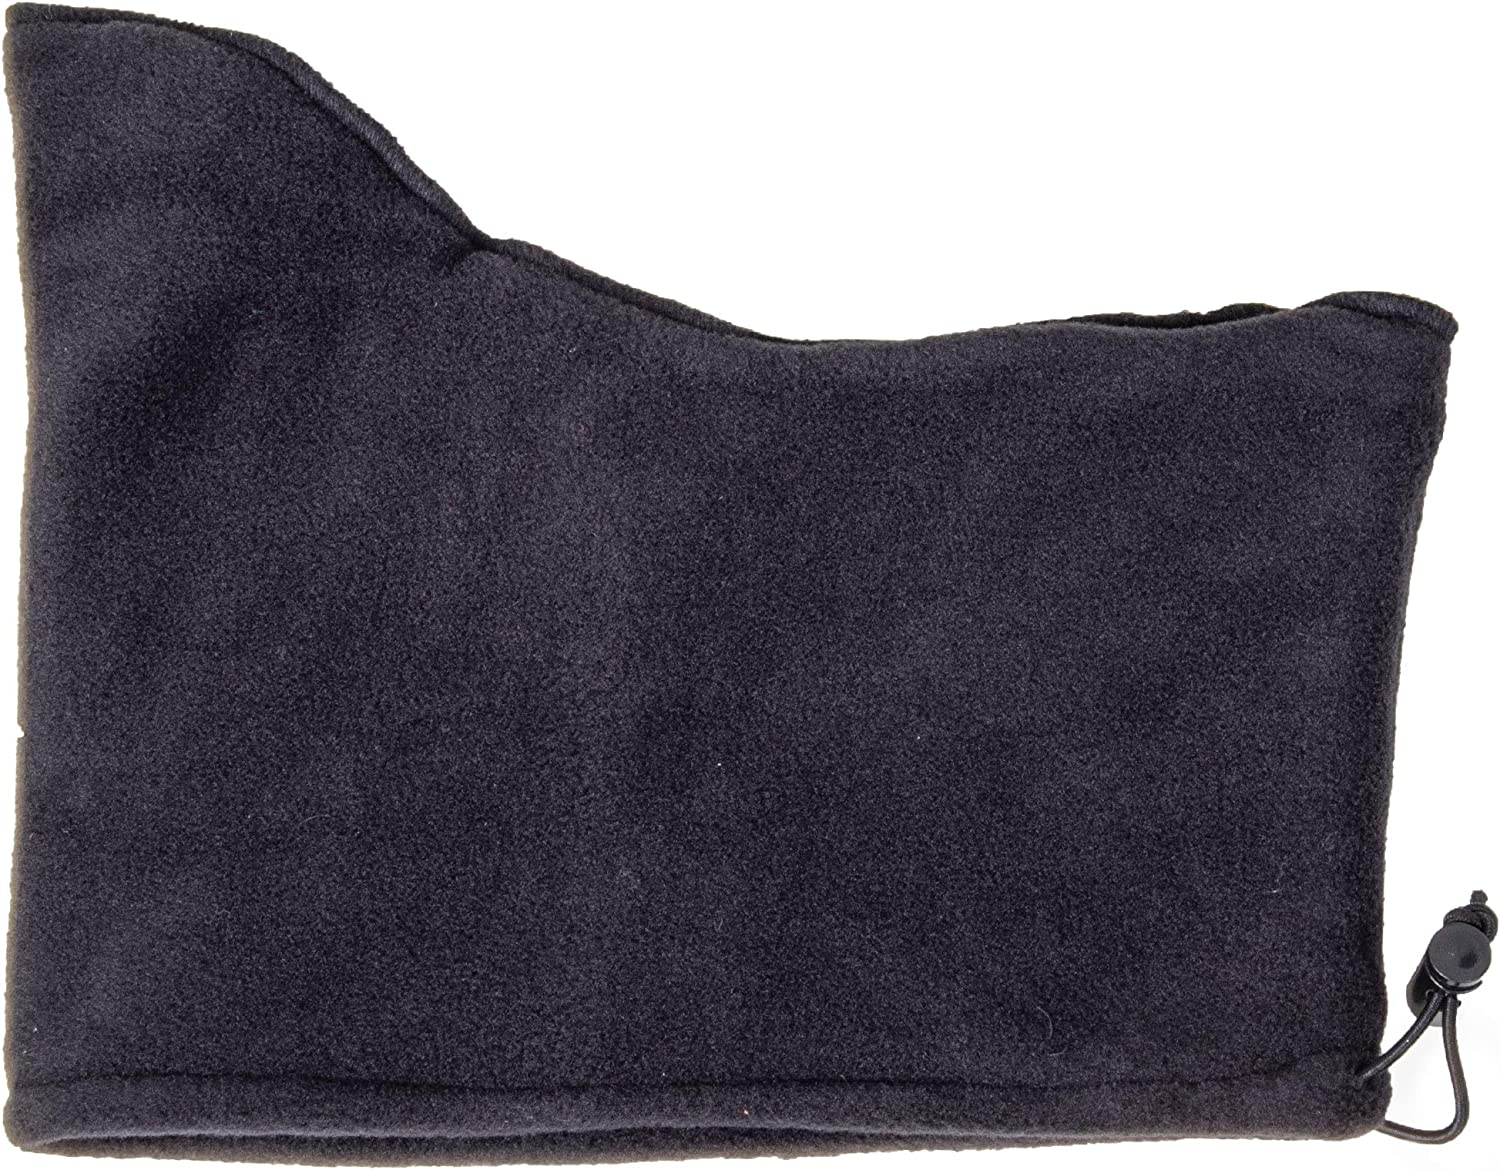 Black, One Size Fits All RefrigiWear Double Layer Thick Fleece Neck Gaiter with Adjustable Drawcord